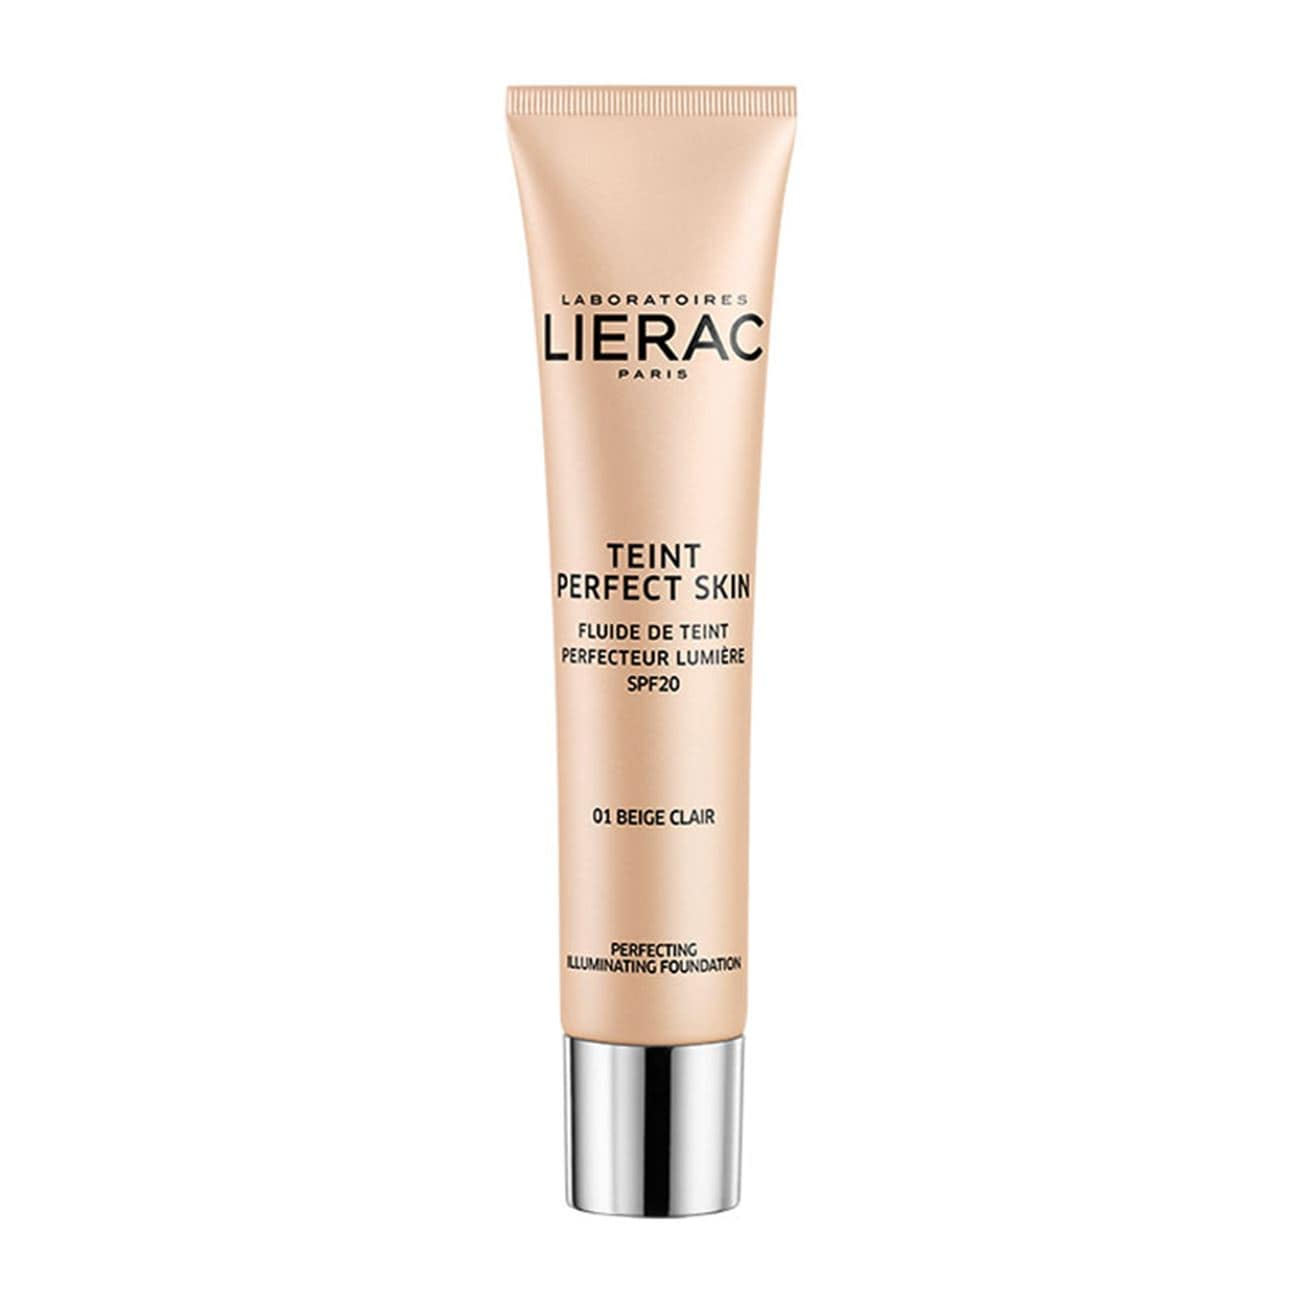 Teint Perfect Skin Perfecting Illuminating Fluid